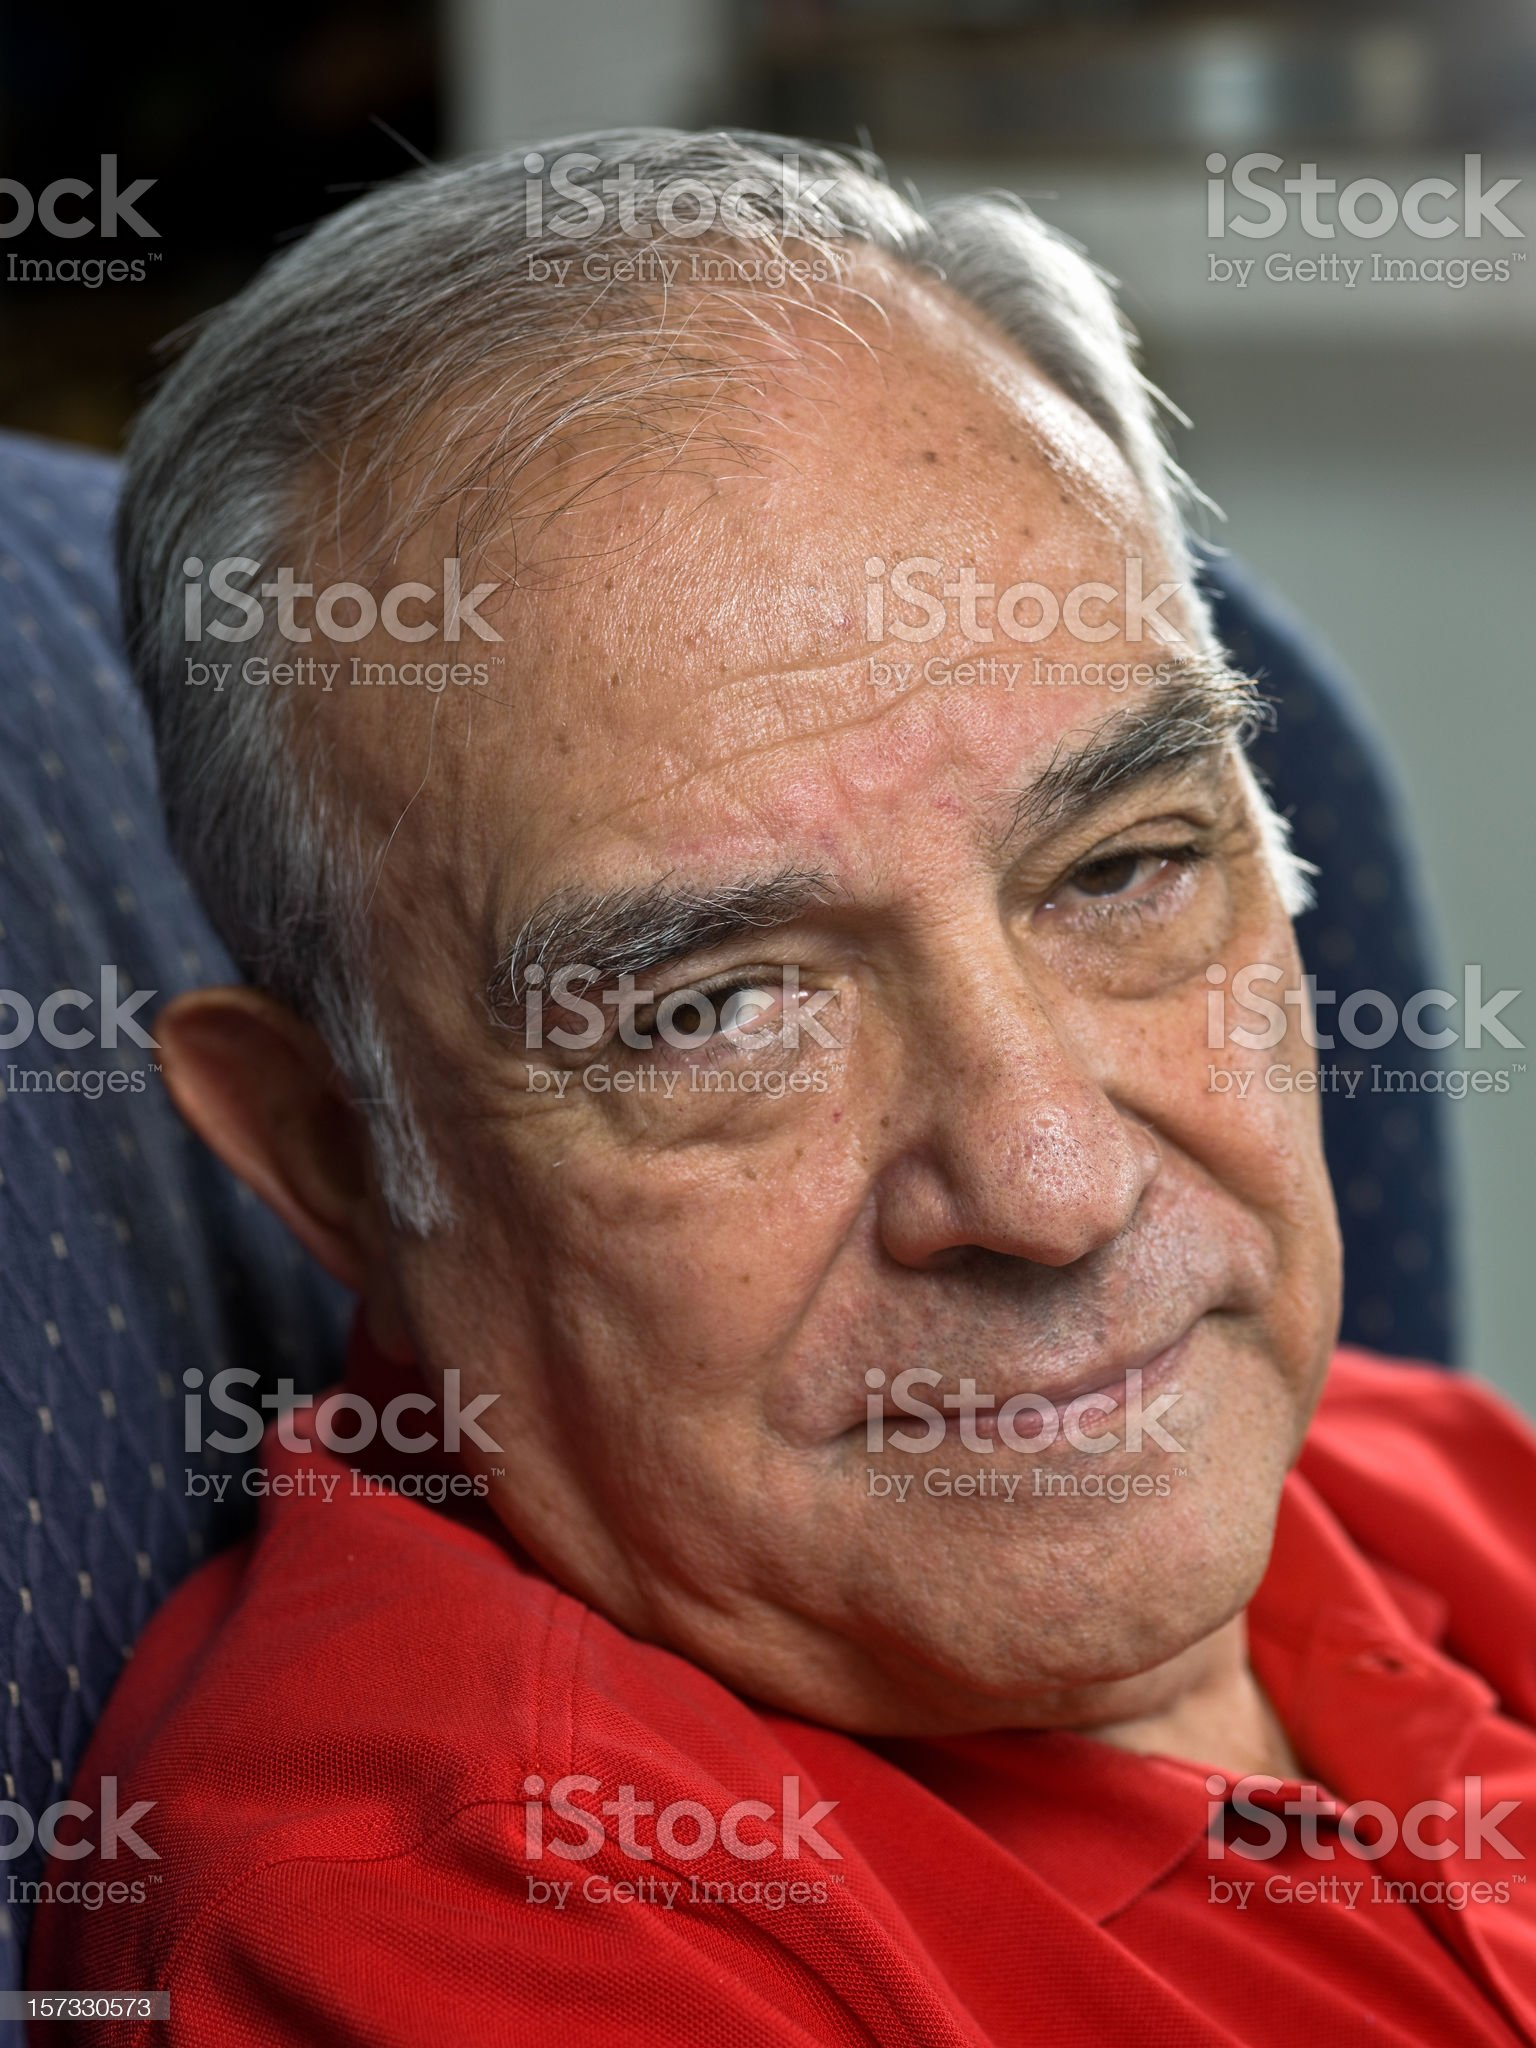 Hispanic senior Male royalty-free stock photo